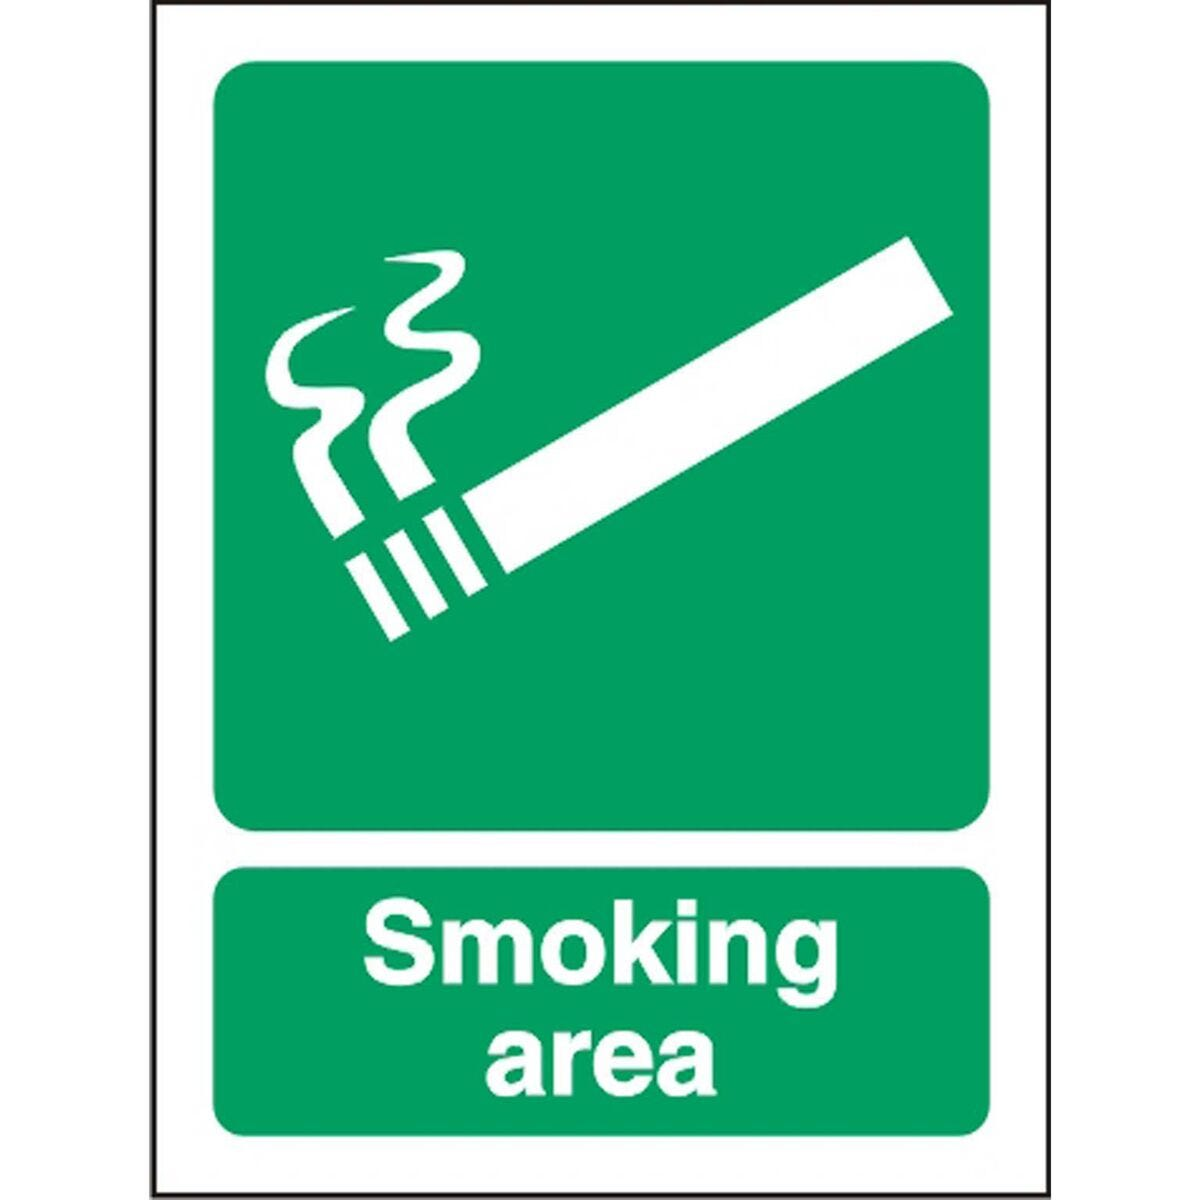 Smoking Area Outdoor Sign  300x400mm